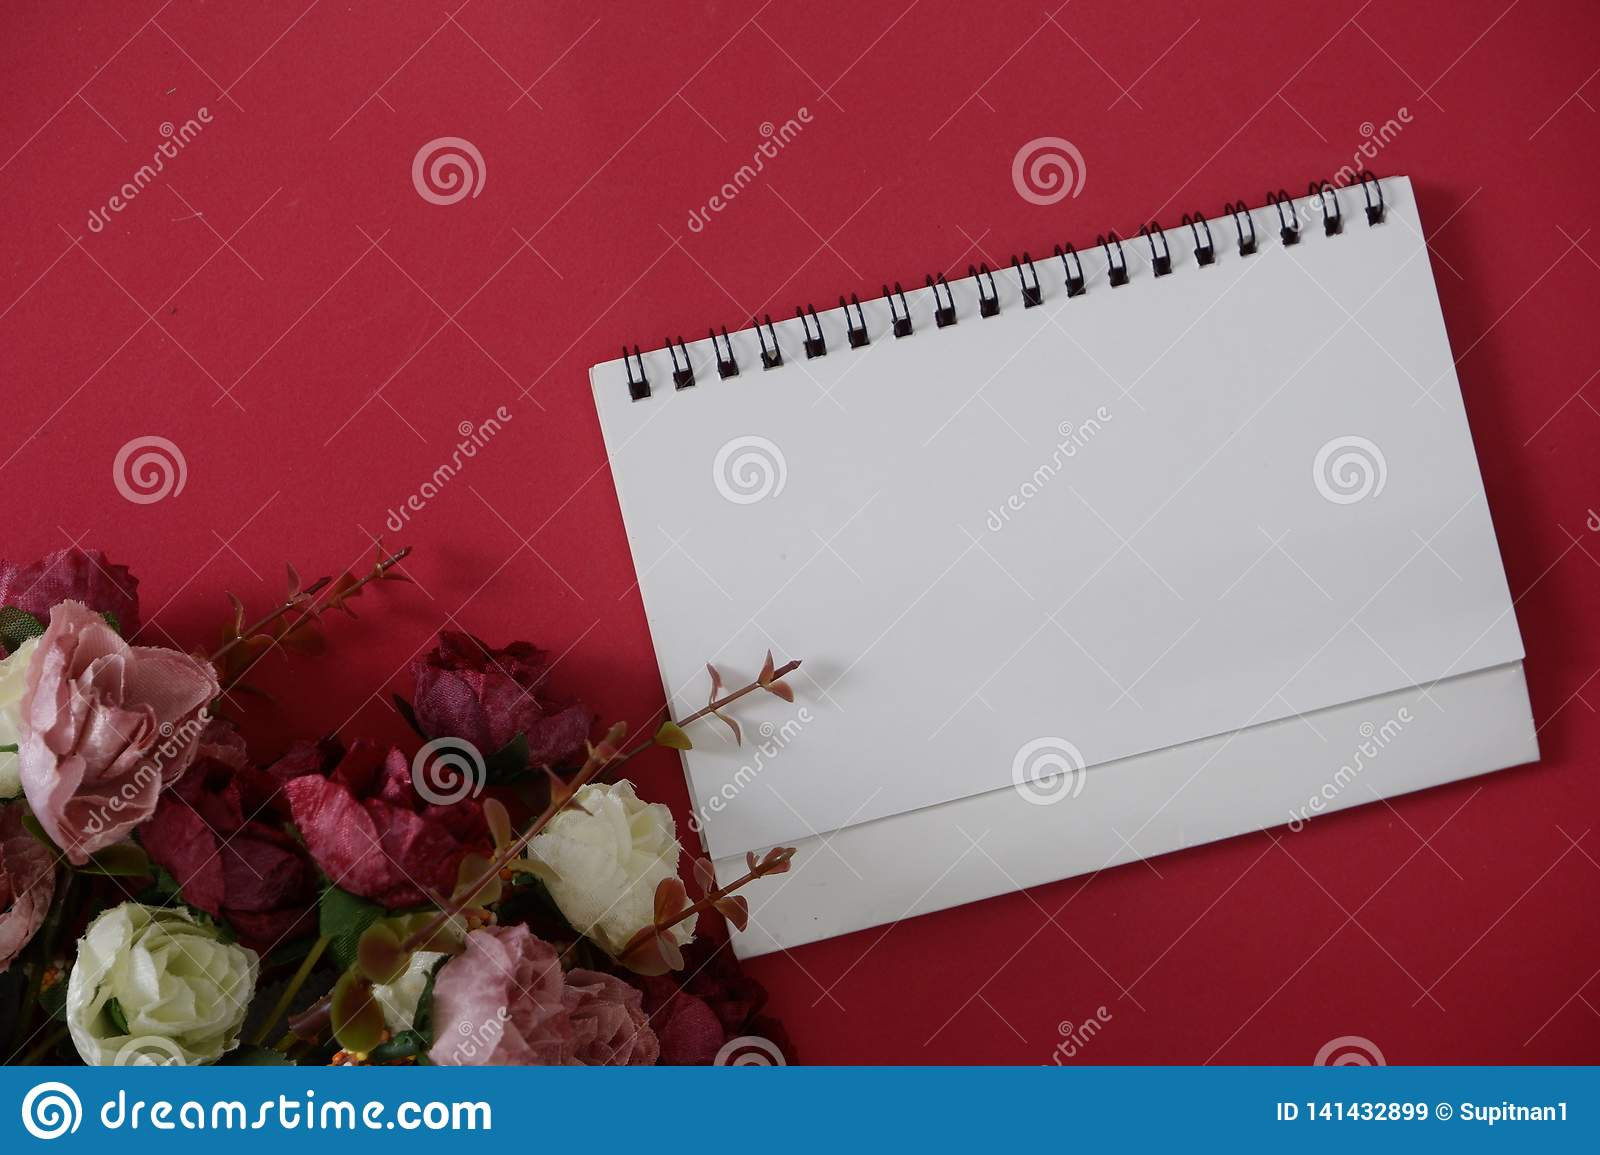 Mock-up white paper with space for text or picture on red background and flower